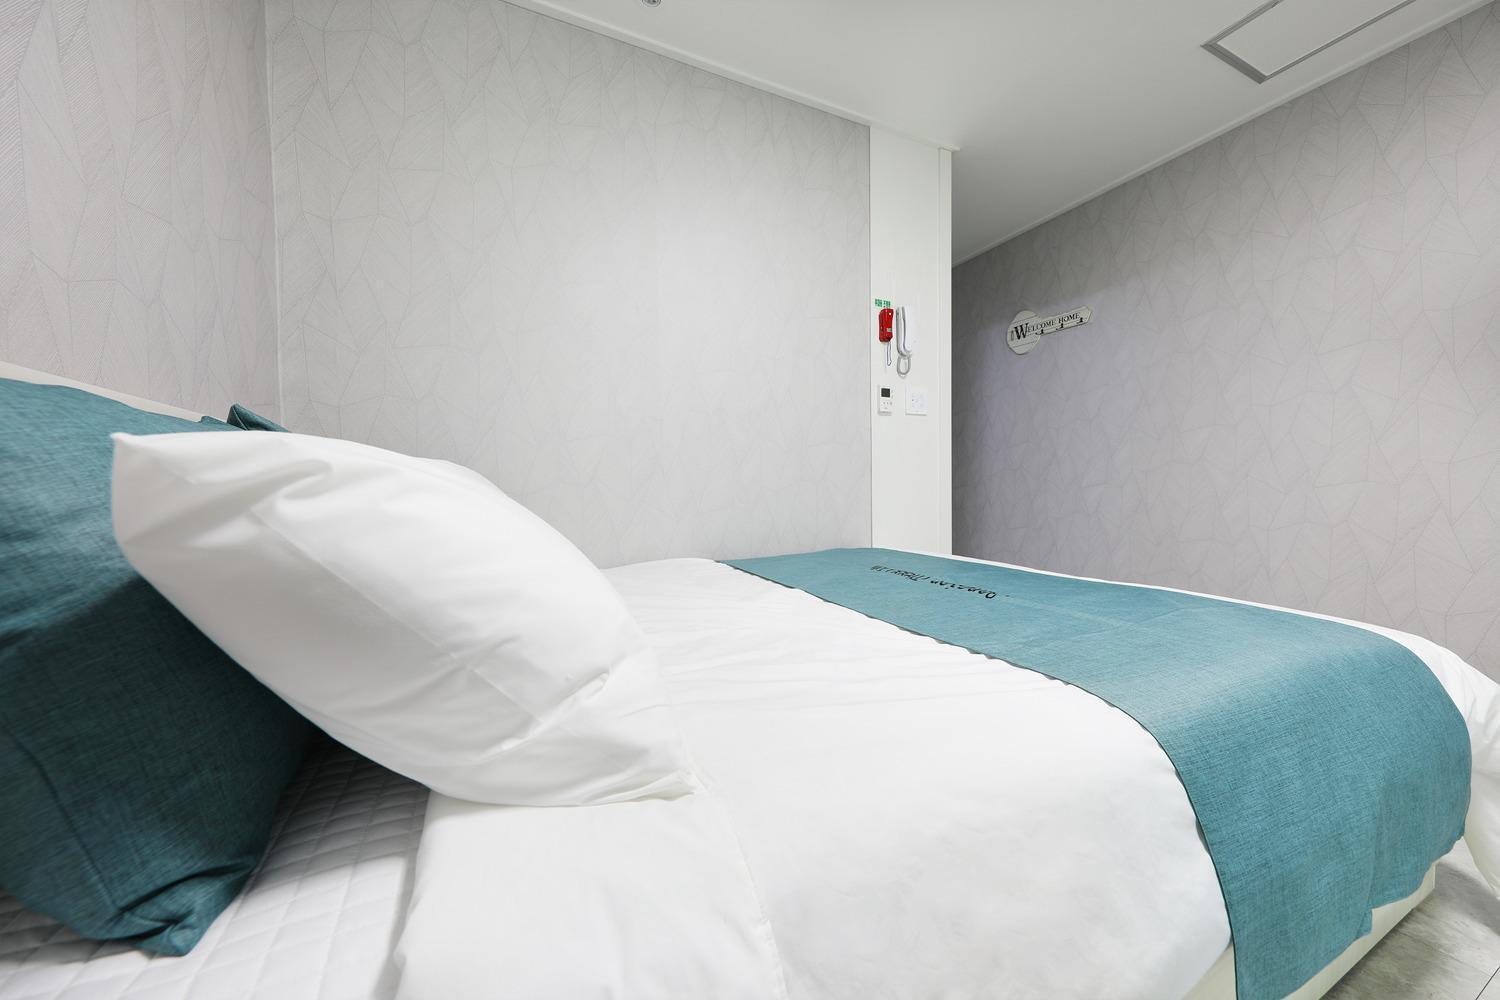 Samcheok The attracted Pension Random assignment of room 101 / 102 / 103